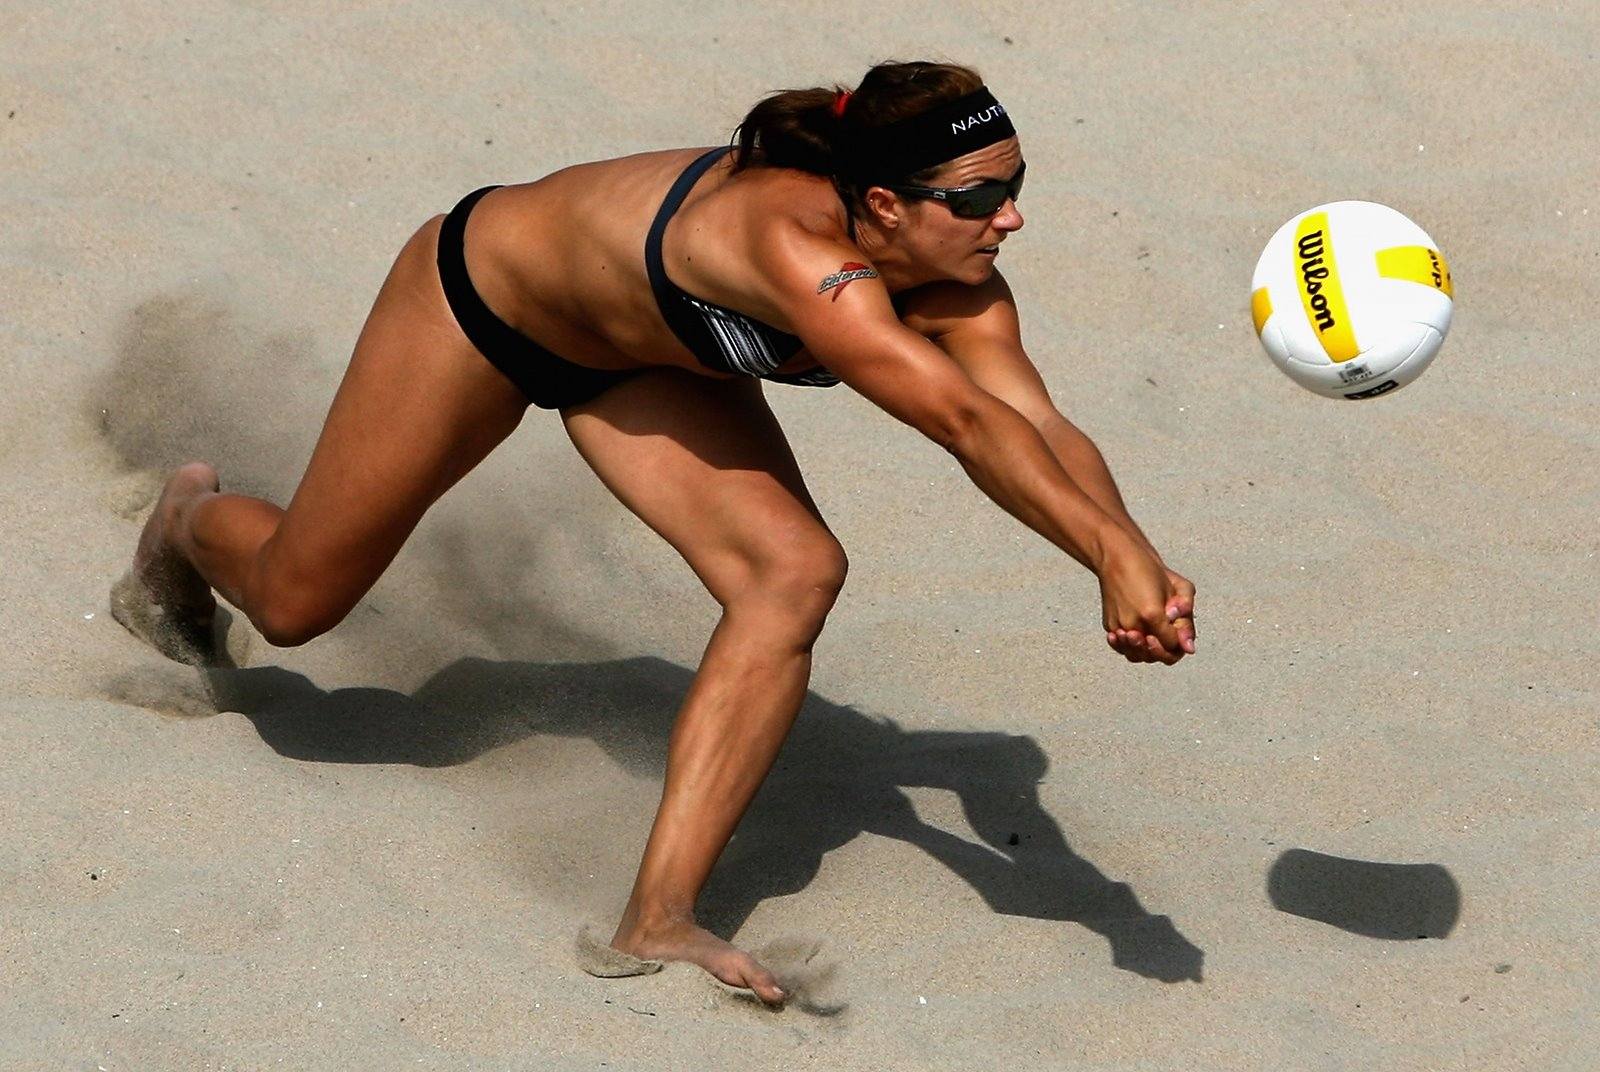 http://2.bp.blogspot.com/-6mpympy00g0/UABHNoa7S9I/AAAAAAAAAOk/mCy2605zovo/s1600/Misty+May-Treanor.jpg